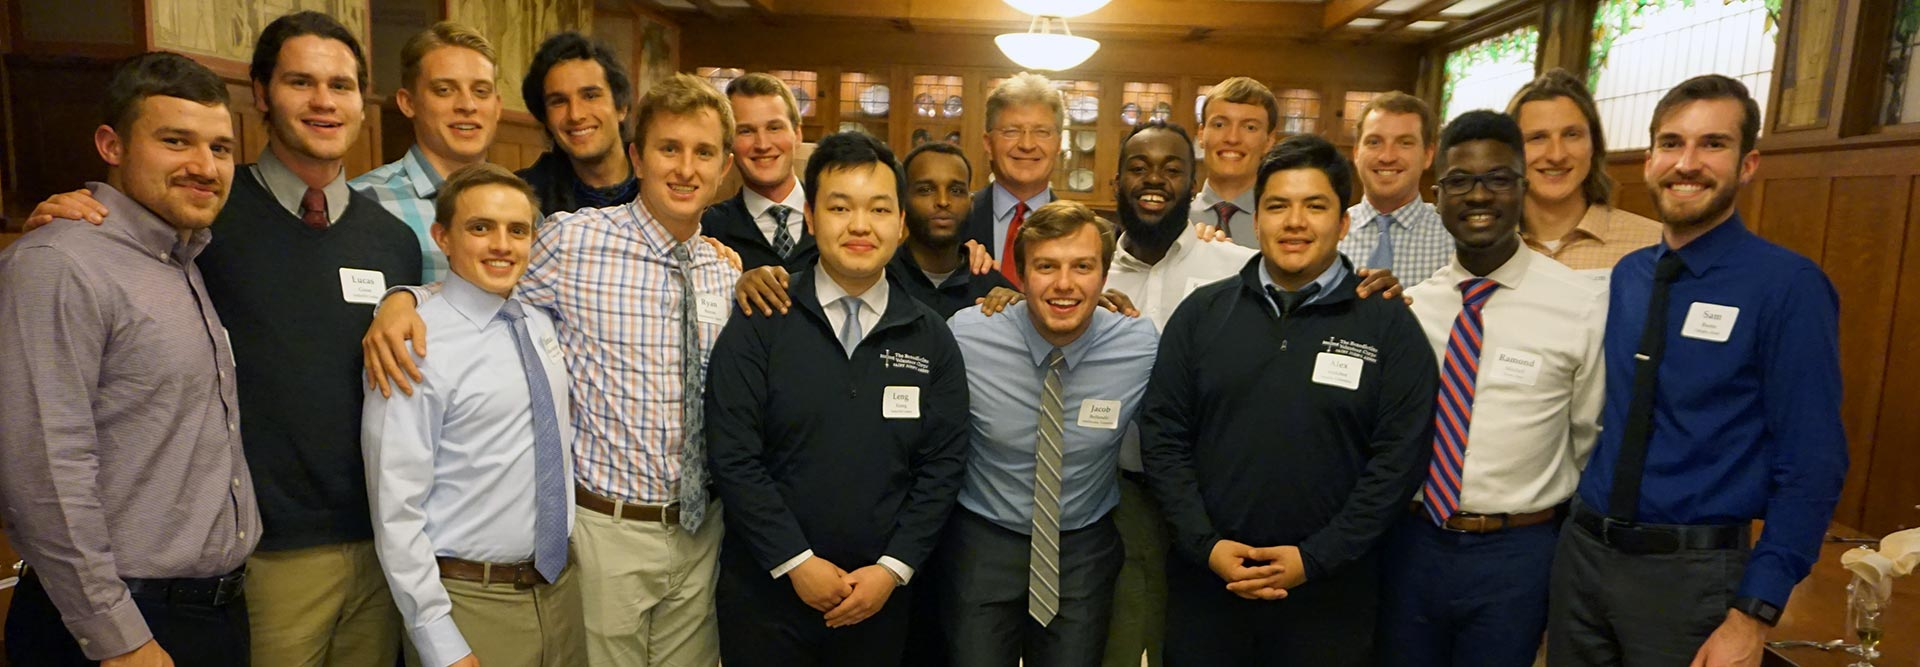 Benedictine Volunteer Corps selectees primed for rewarding adventures of global service